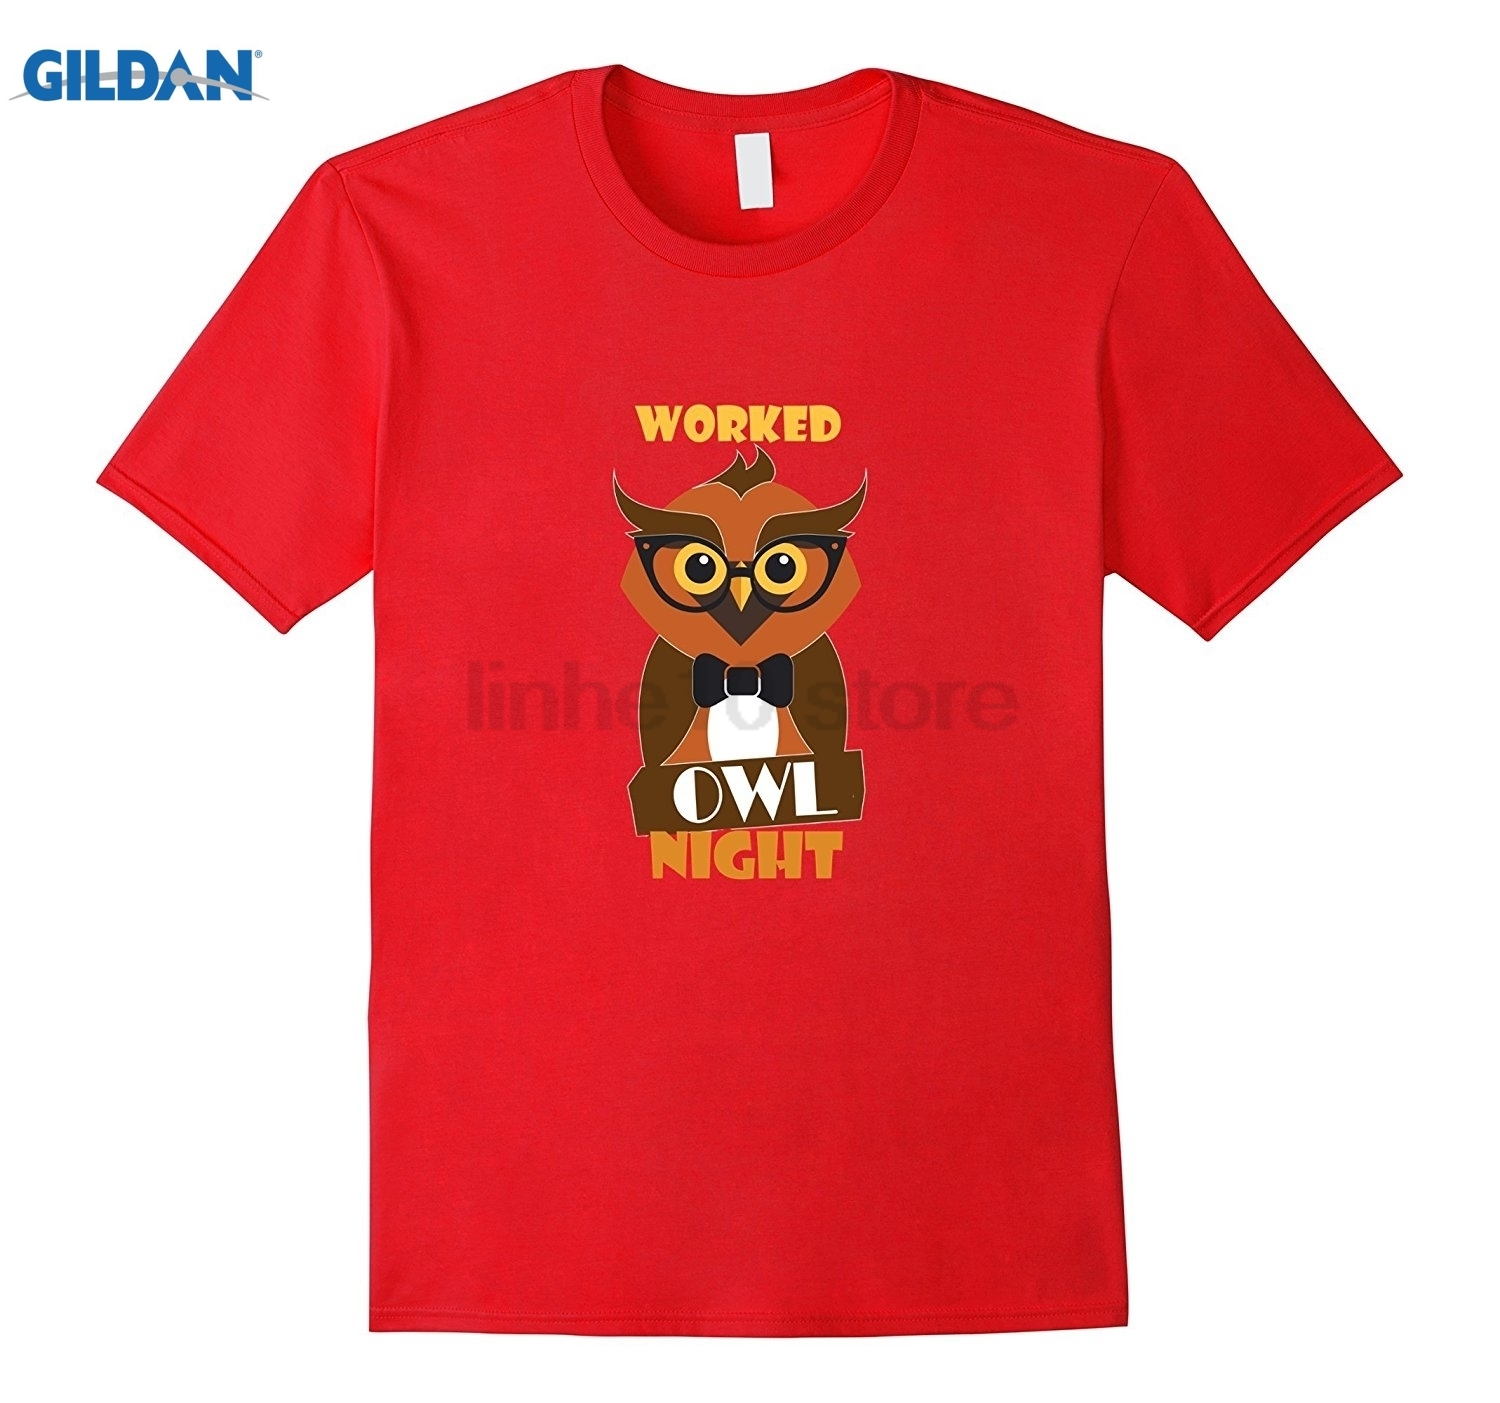 GILDAN Owl T-Shirt, Night Shift Worker Cute Humorous Freelancer Tee Womens T-shirt